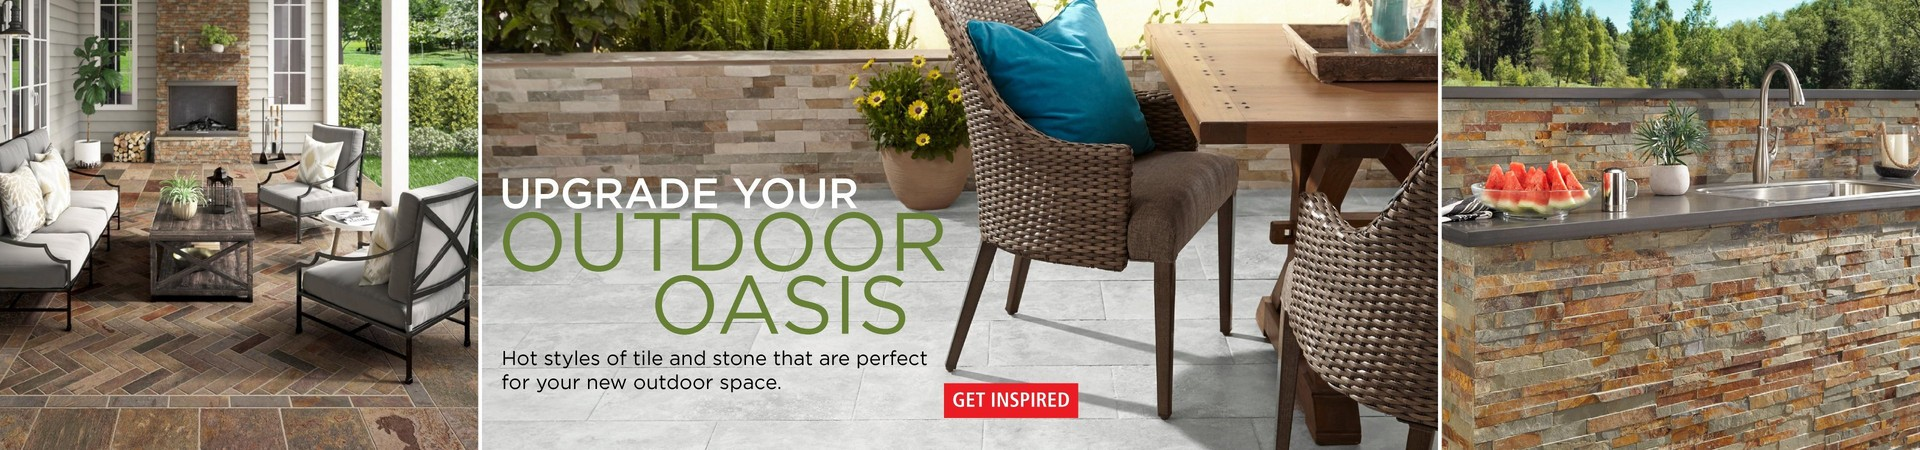 Hot styles of tile and stone that are perfect for your new outdoor space.